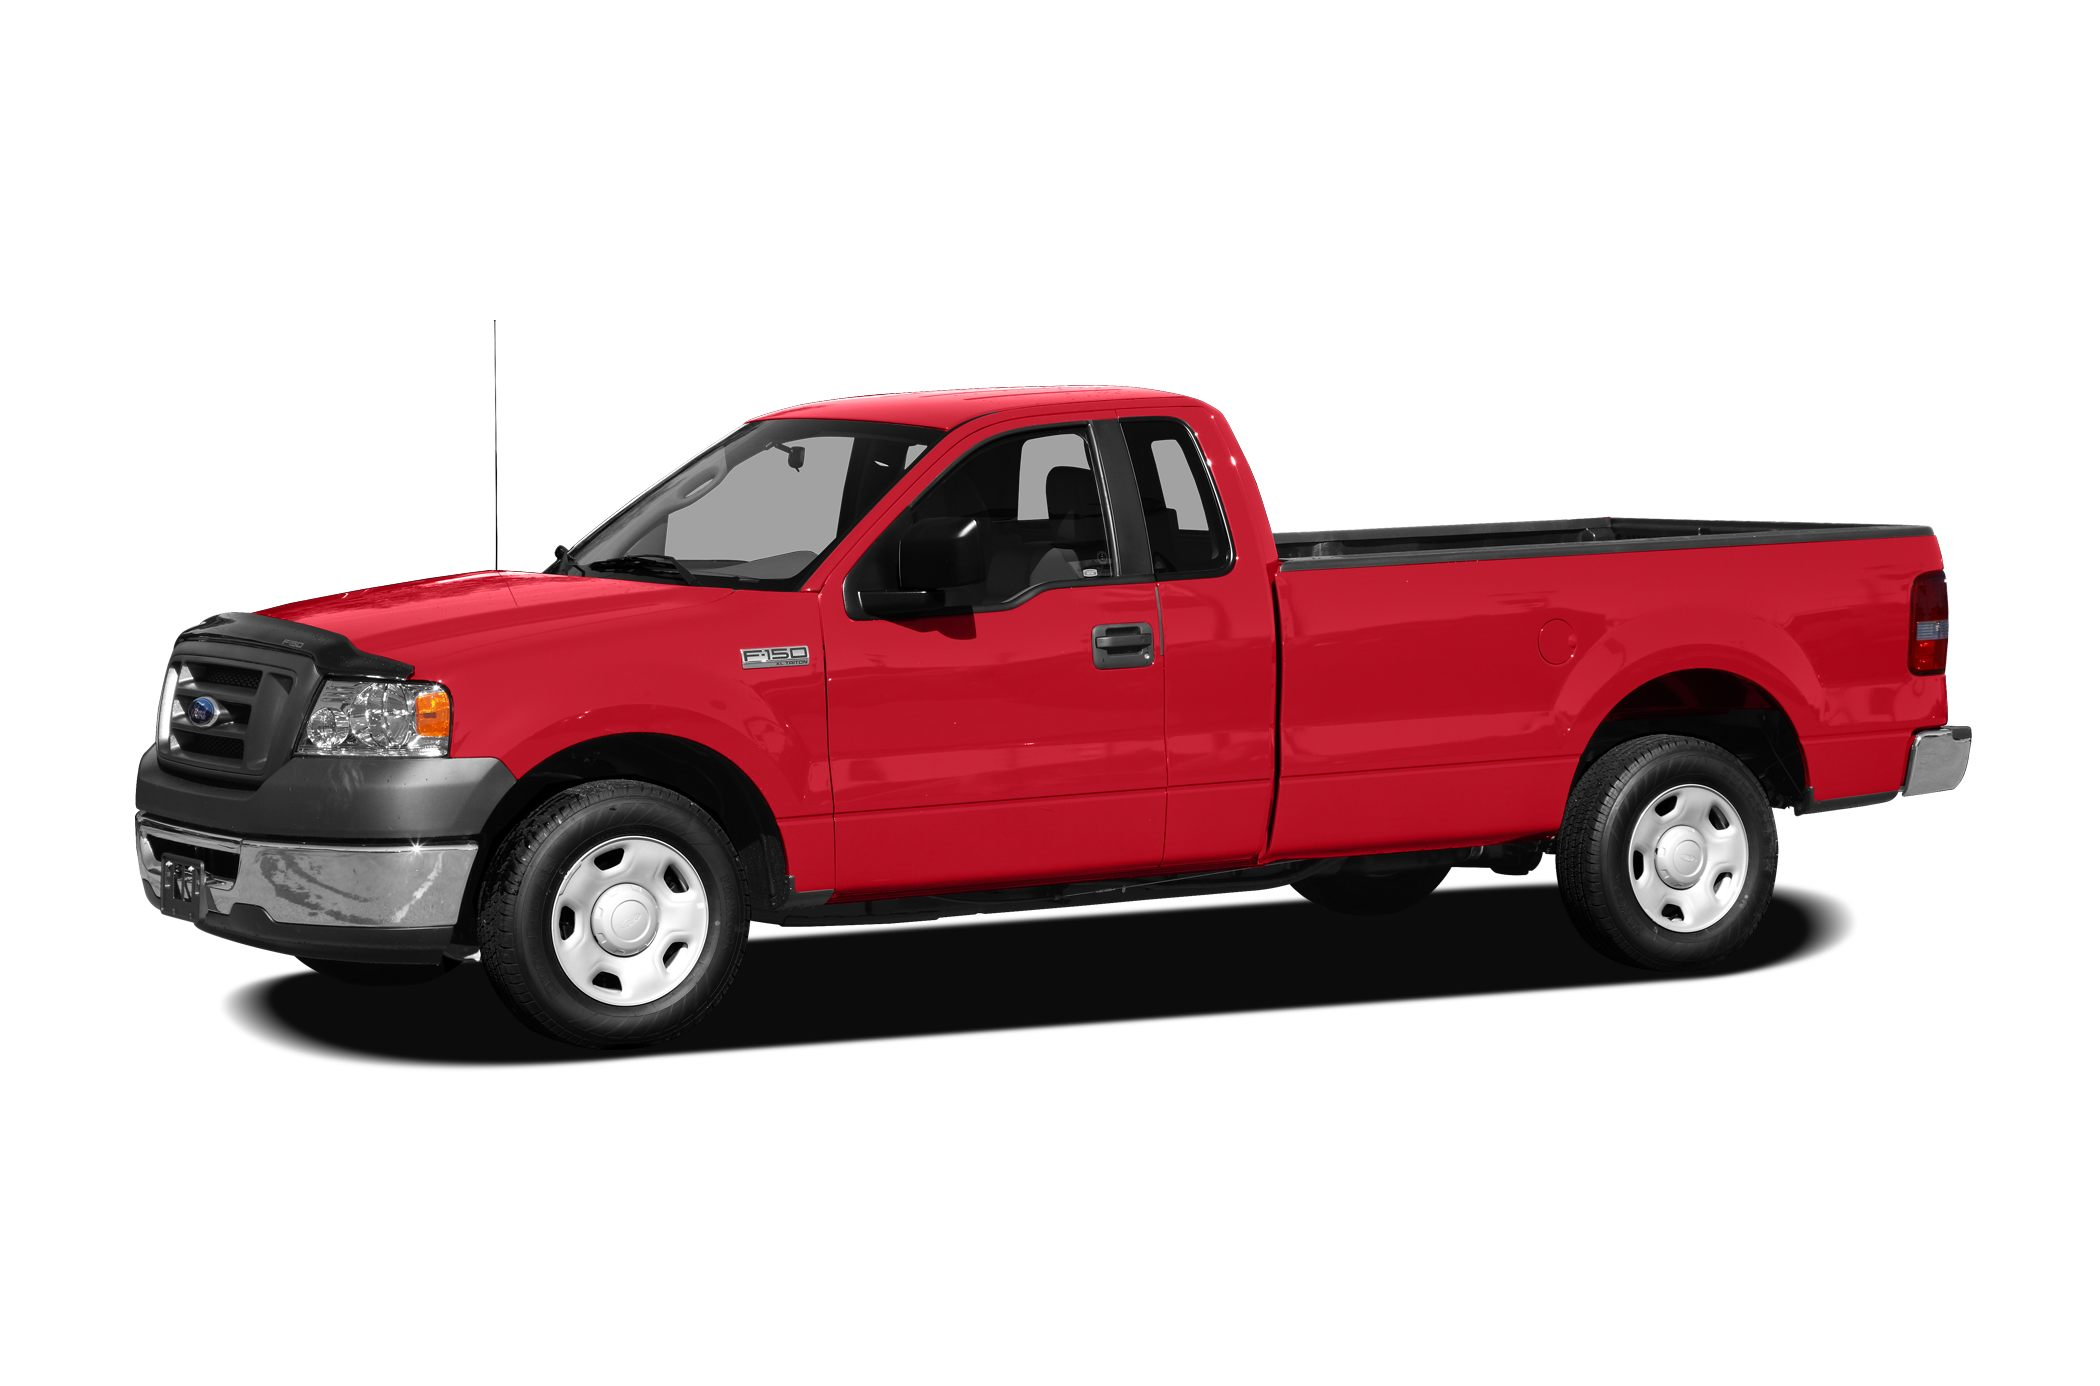 2008 Ford F150 XL Crew Cab Pickup for sale in Brenham for $0 with 149,755 miles